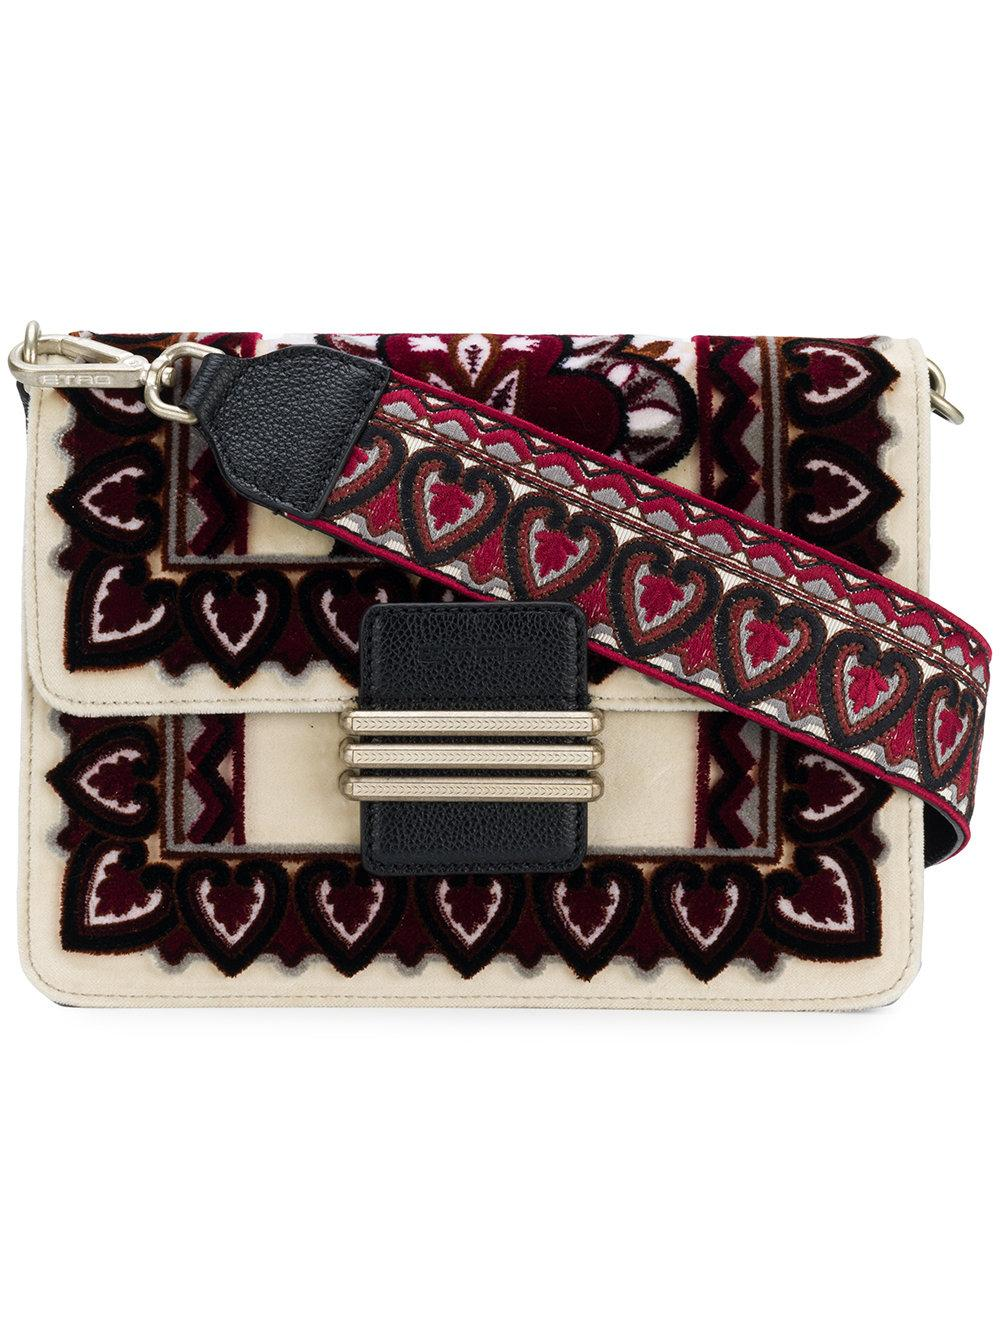 Etro Rainbow Embroidered Shoulder Bag In Multicolour